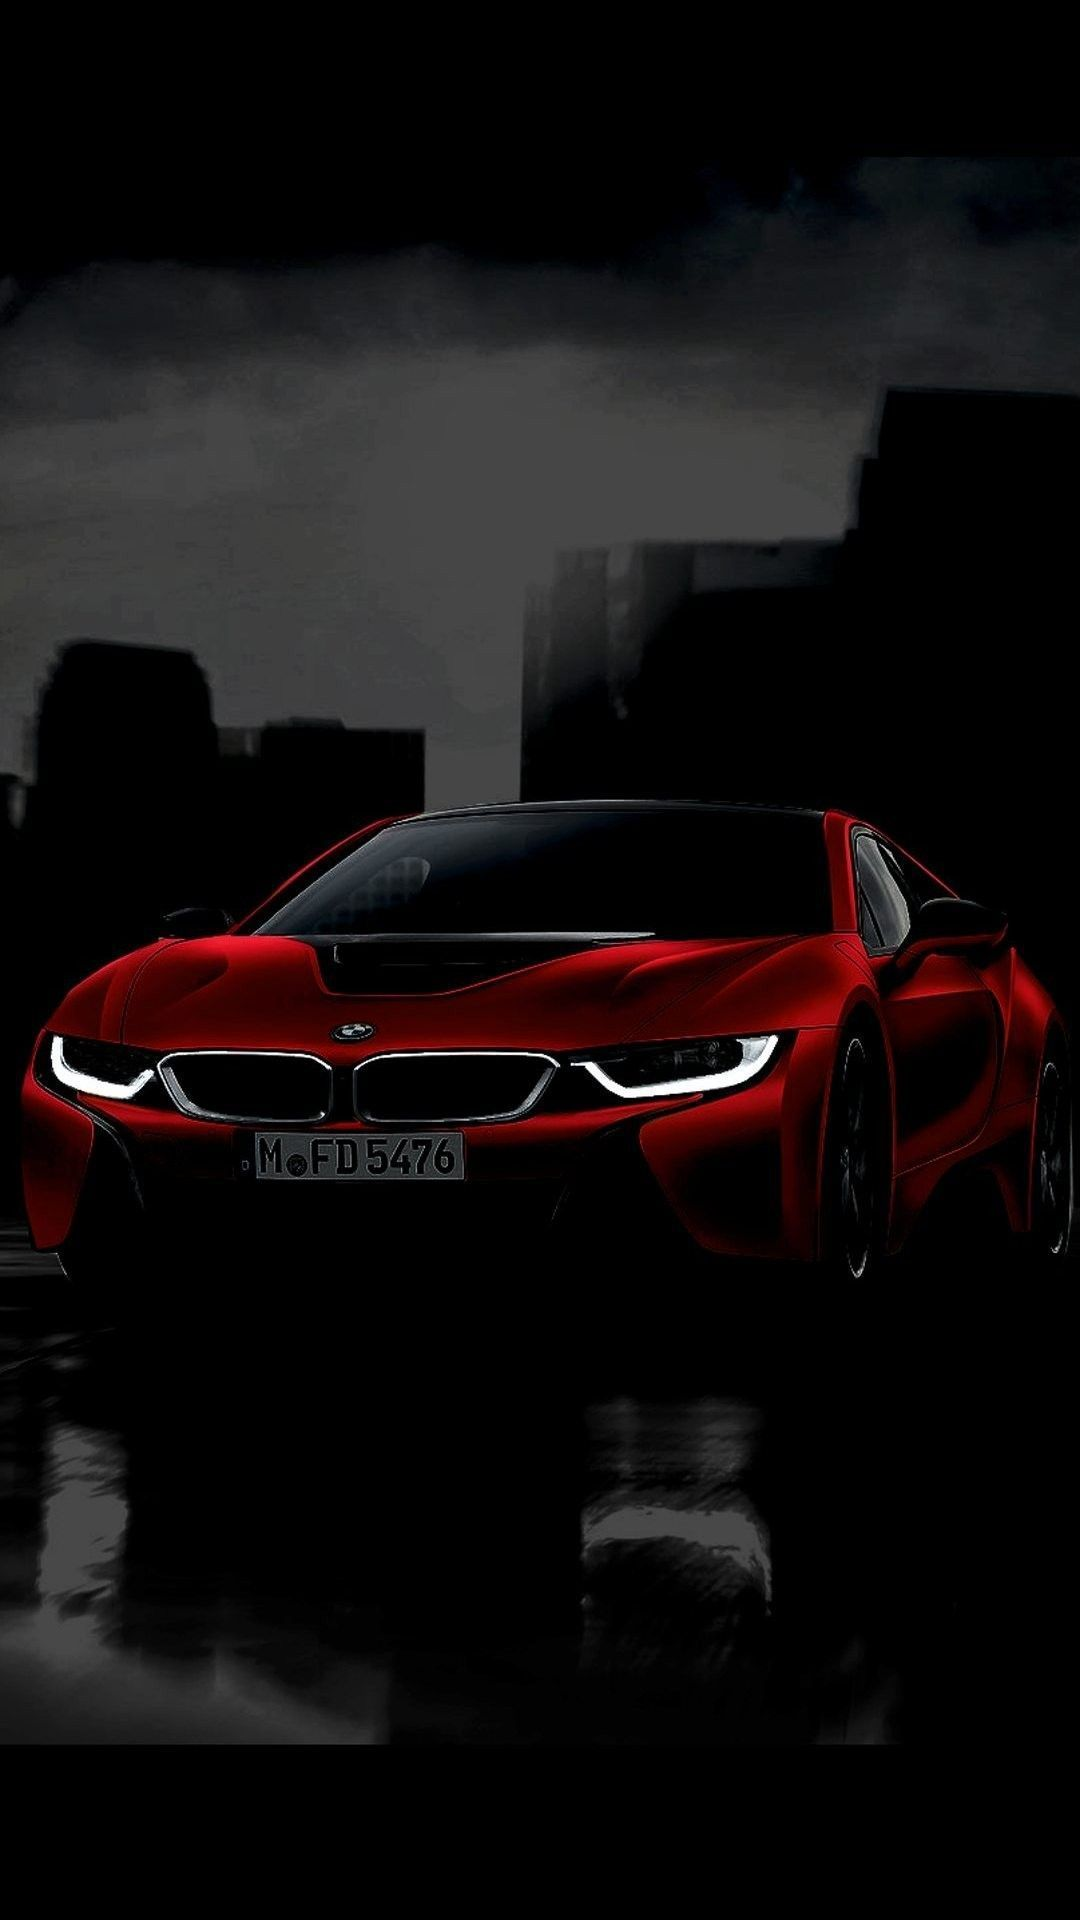 Black Background Best Images Hd Bmw I8 Wallpaper Red Bmw I8 Wallpaper Iphone 1080x1920 Download Hd Wallpaper Wallpapertip